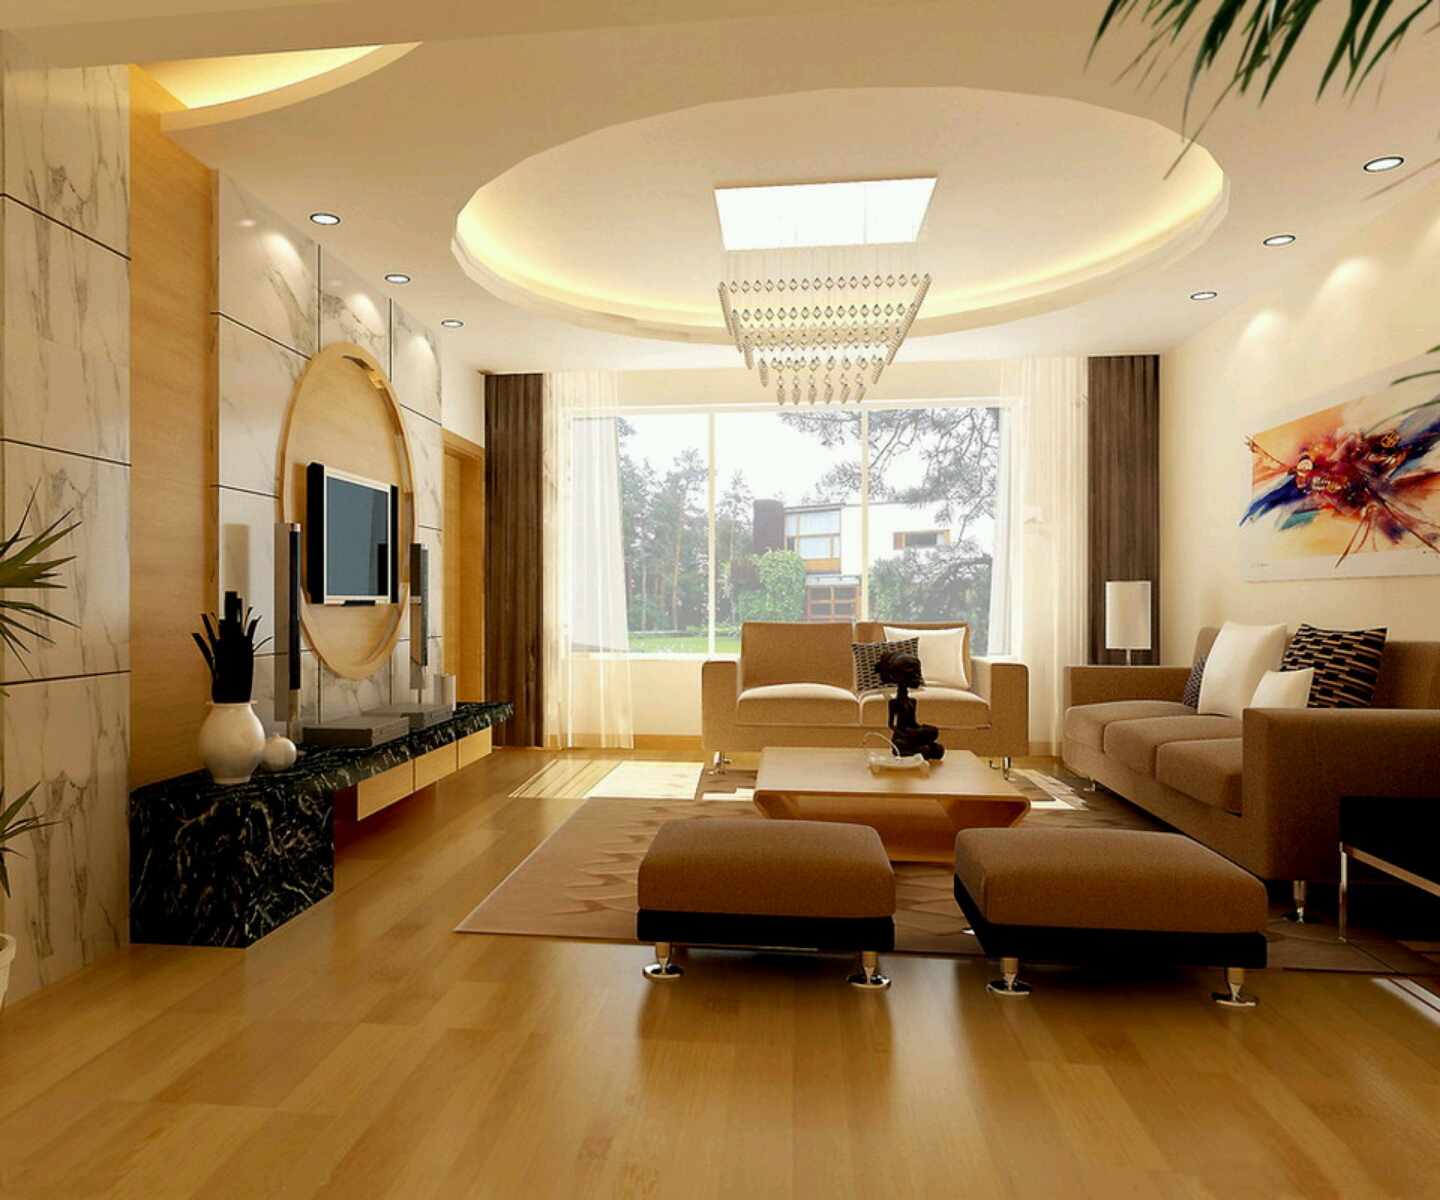 Modern interior decoration living rooms ceiling designs for New living room decor